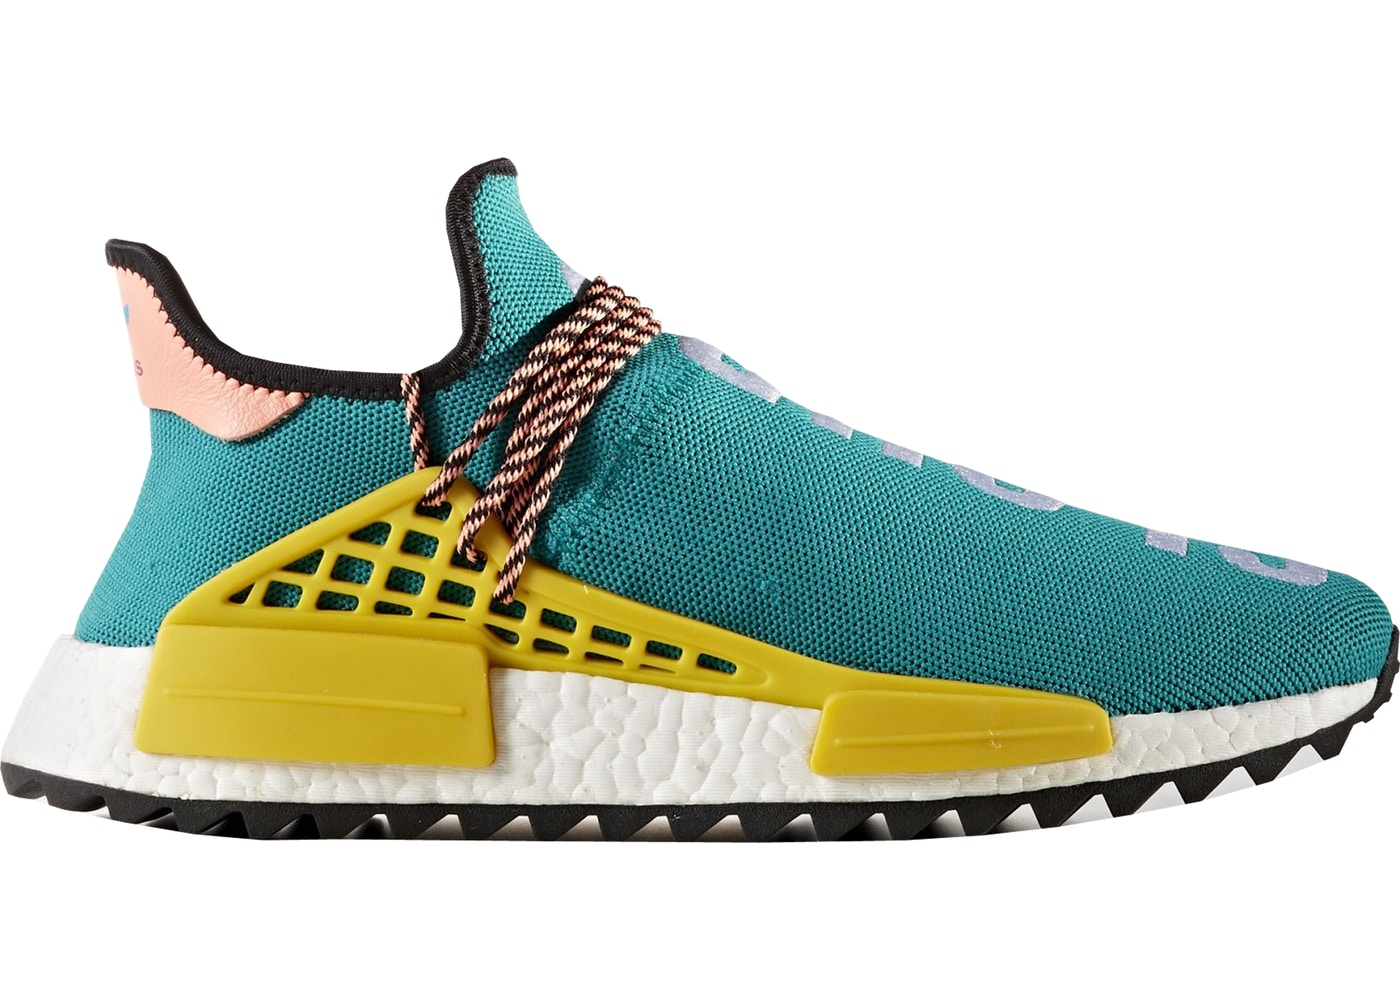 452e579d98400 Sell. or Ask. Size 7. View All Bids. adidas Human Race NMD Pharrell Sun Glow